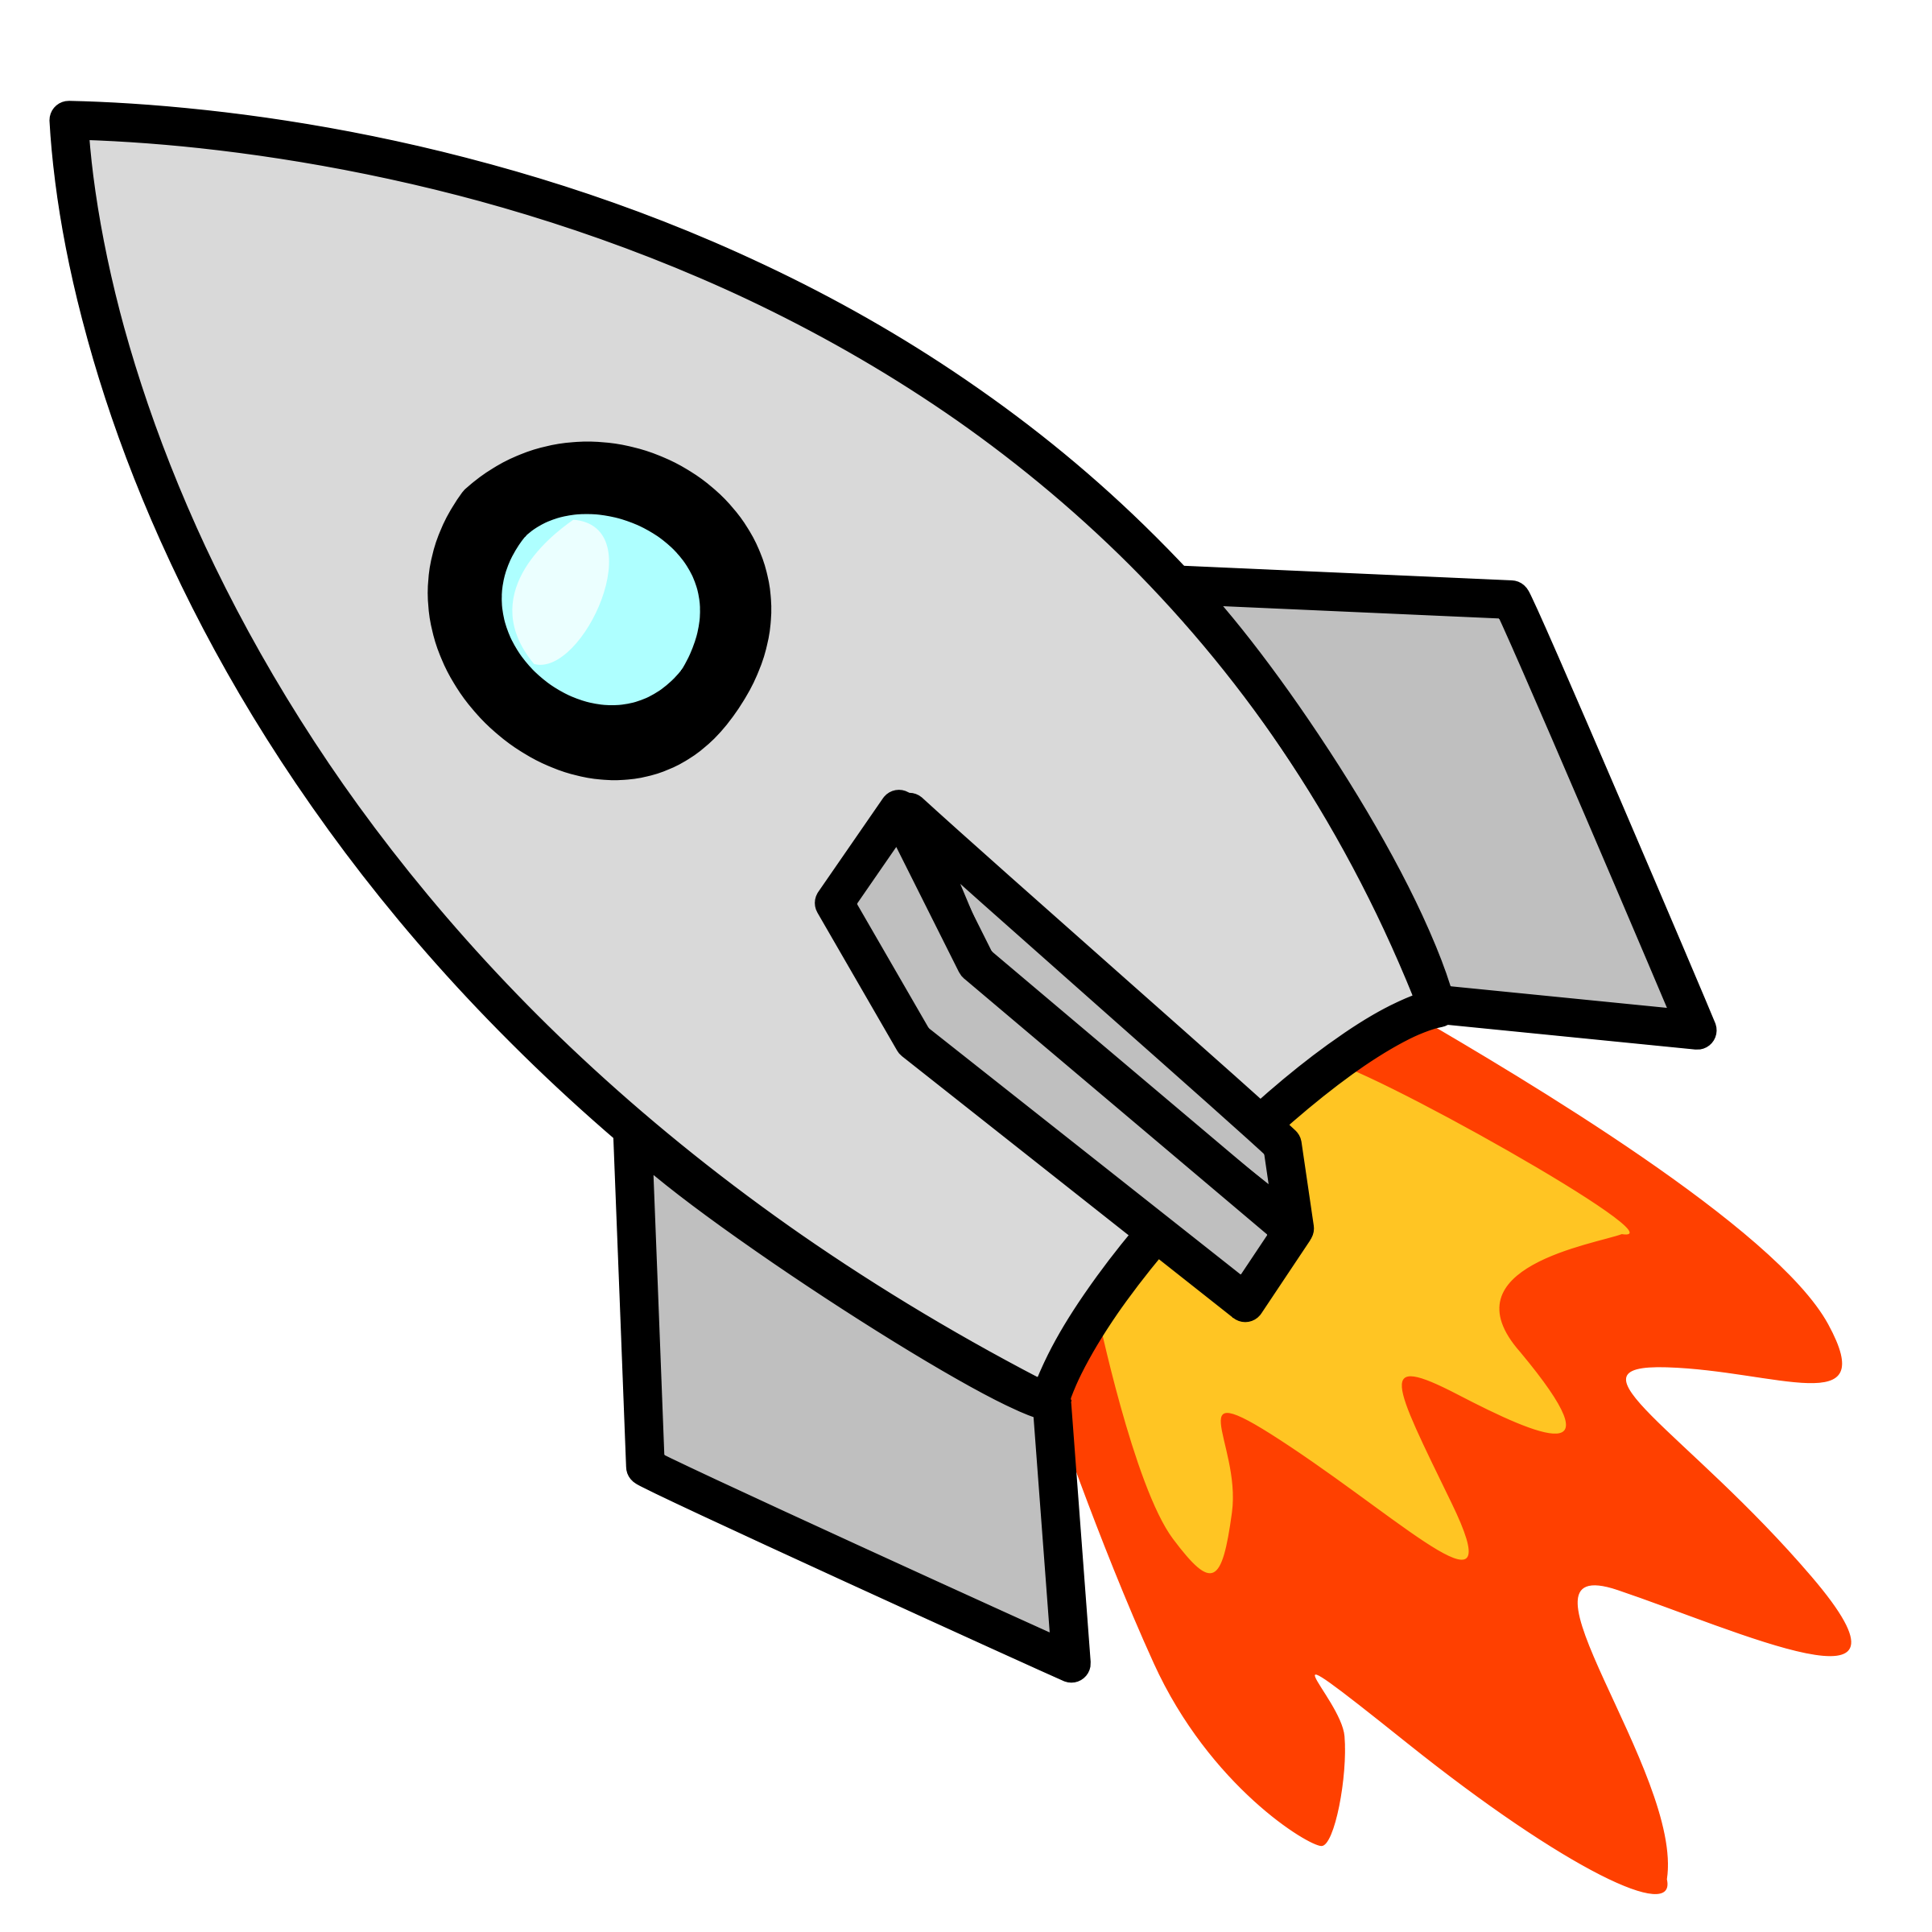 collection of paper. Clipart rocket launching pad